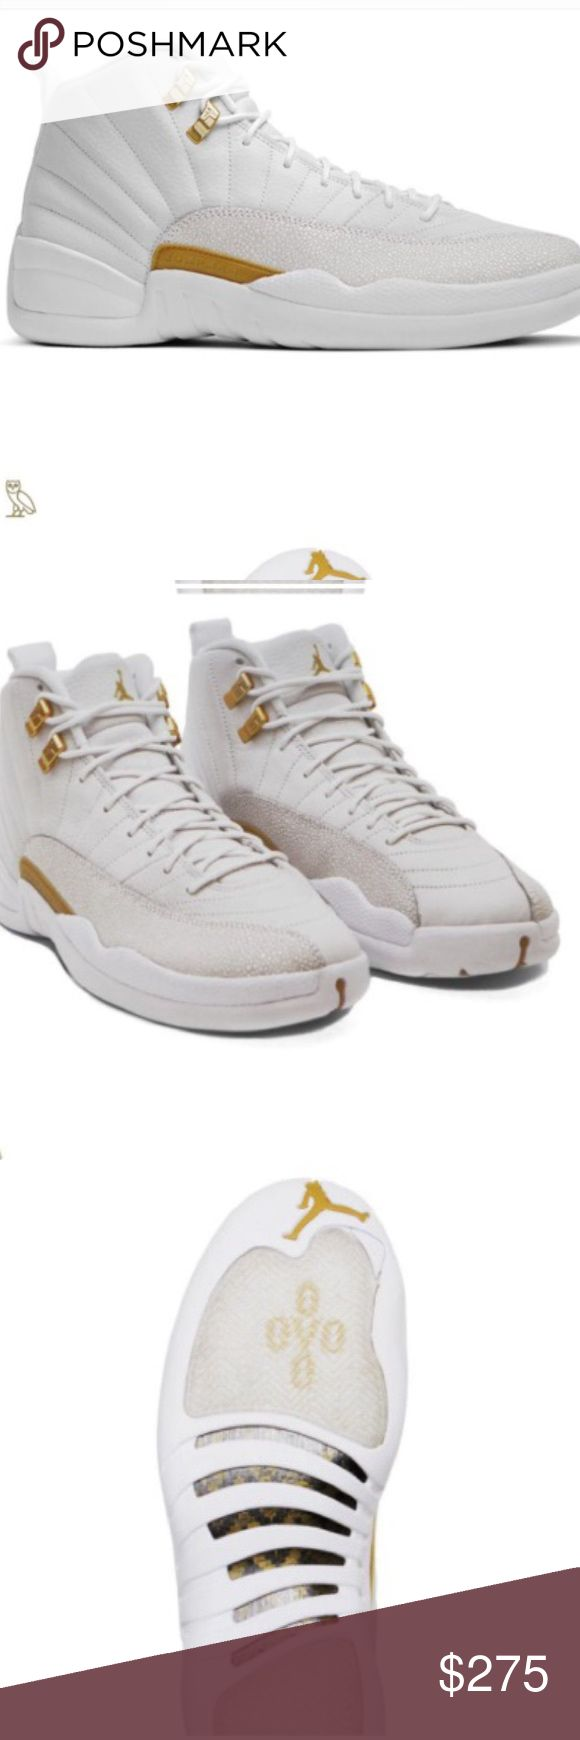 Jordan 12 OVO White/Gold PRE-ORDER YOUR-Brand New Jordan OVO 12's White/Gold Instagram @HeadsnapsUSA or Headsnaps@gmail.com Jordan Shoes Athletic Shoes